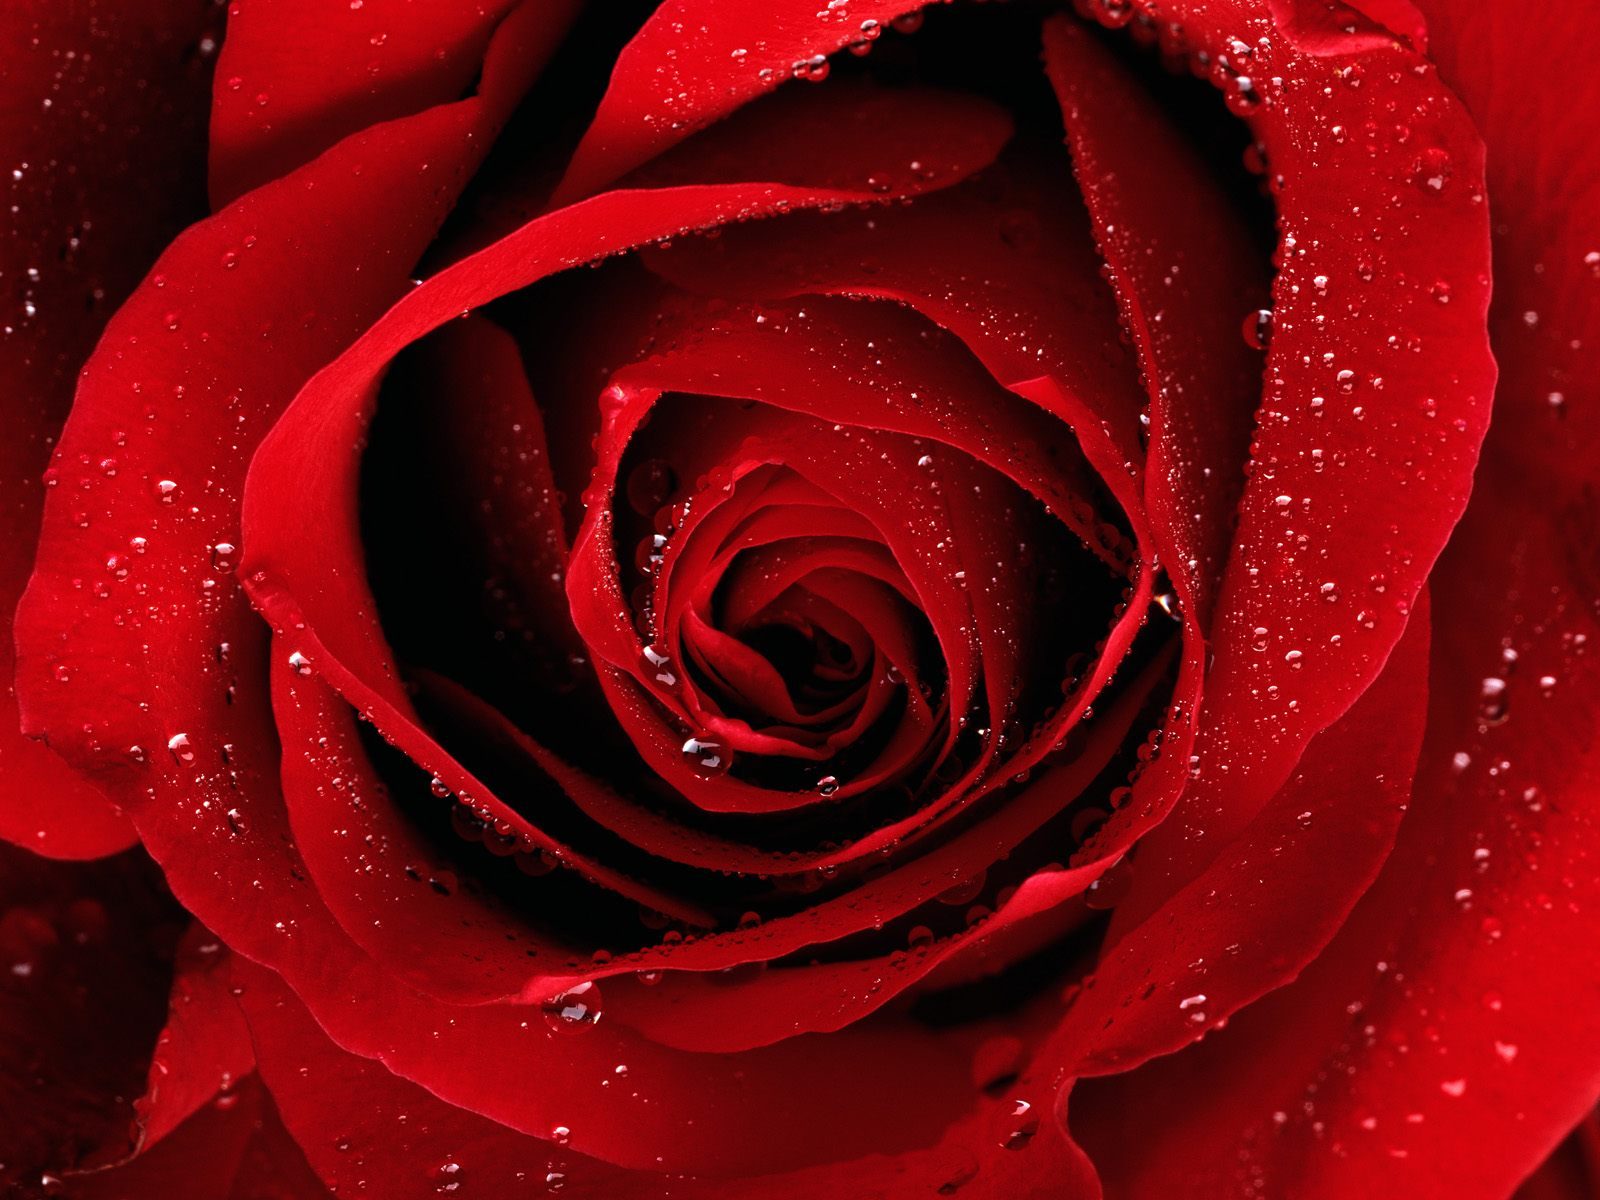 dews-deposited-over-red-rose-in-the-morning